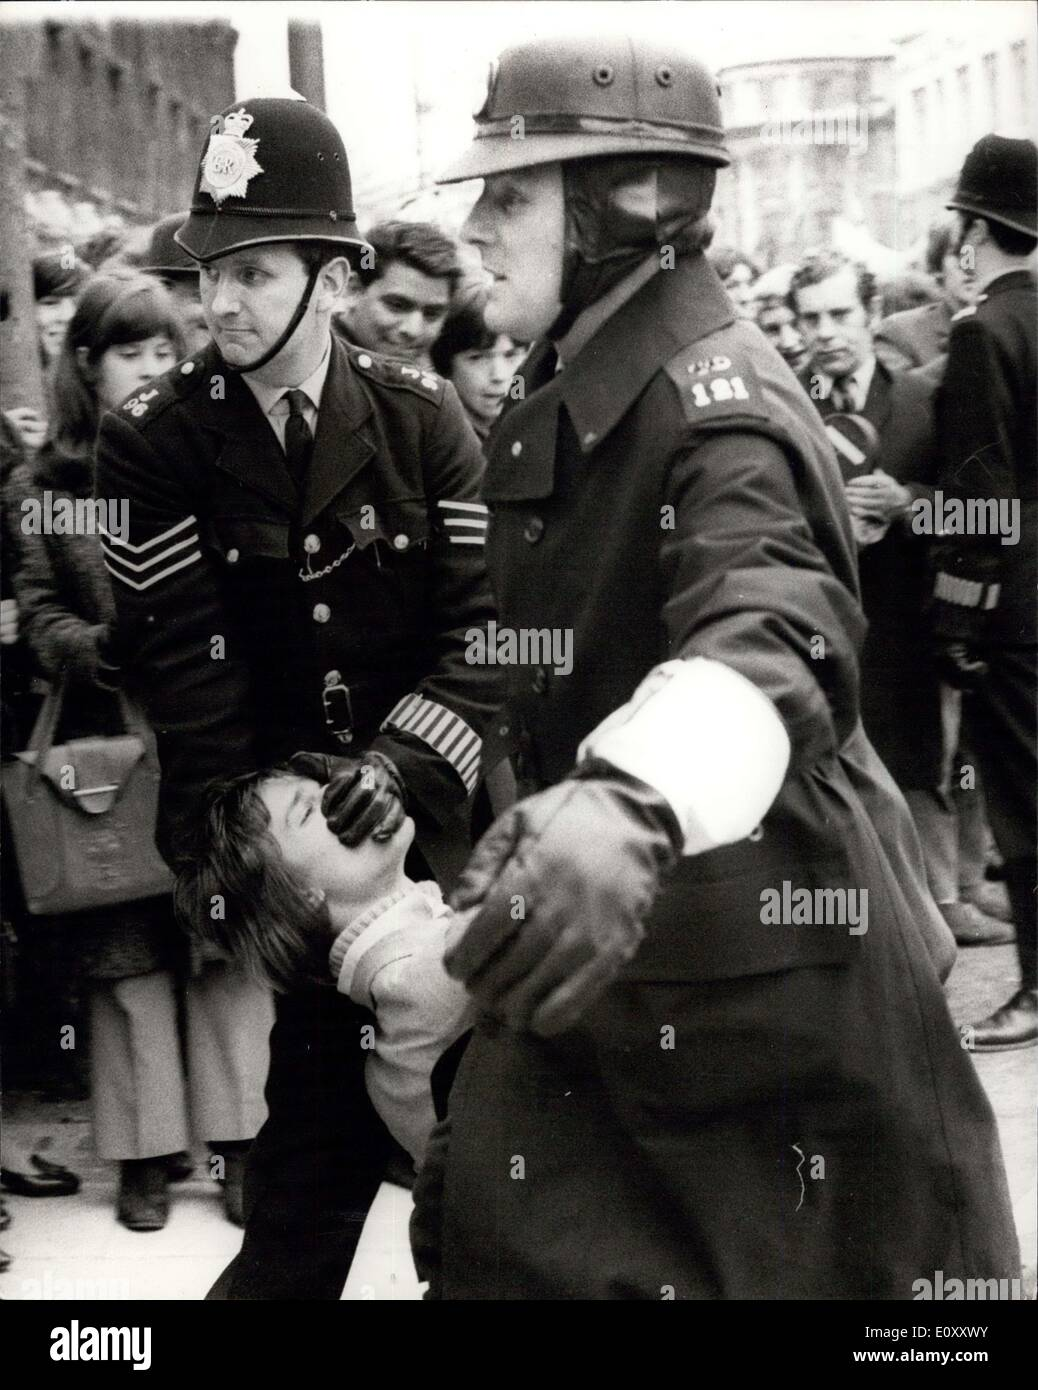 Mar. 24, 1968 - Youth Campaign For Nuclear Disarmament stage Anti-Vietnam War Demonstration: The Youth Campaign for Nuclear Disarmament today staged an anti-Vietnam war demonstration in Trafalgar Square, followed by a march to Downing Street where petitions were handed in to No.10. Photo shows: A police officer clamps his hand over the mouth of one of the demonstrators as he is dragged away in Whitehall today. - Stock Image